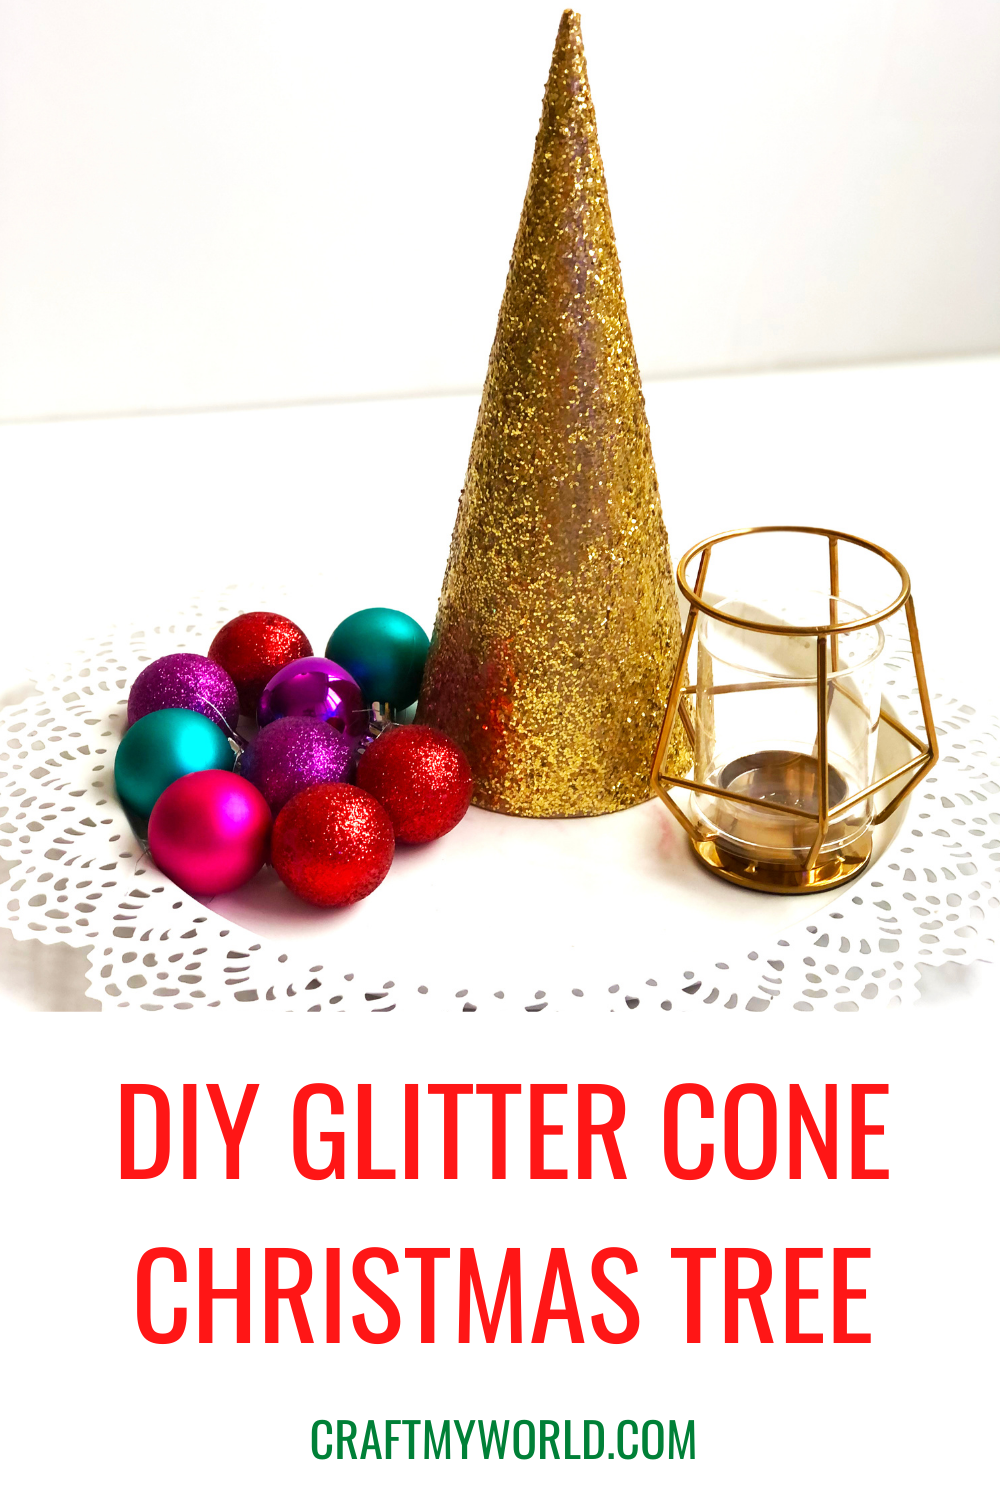 DIY Glitter Cone Christmas Trees description